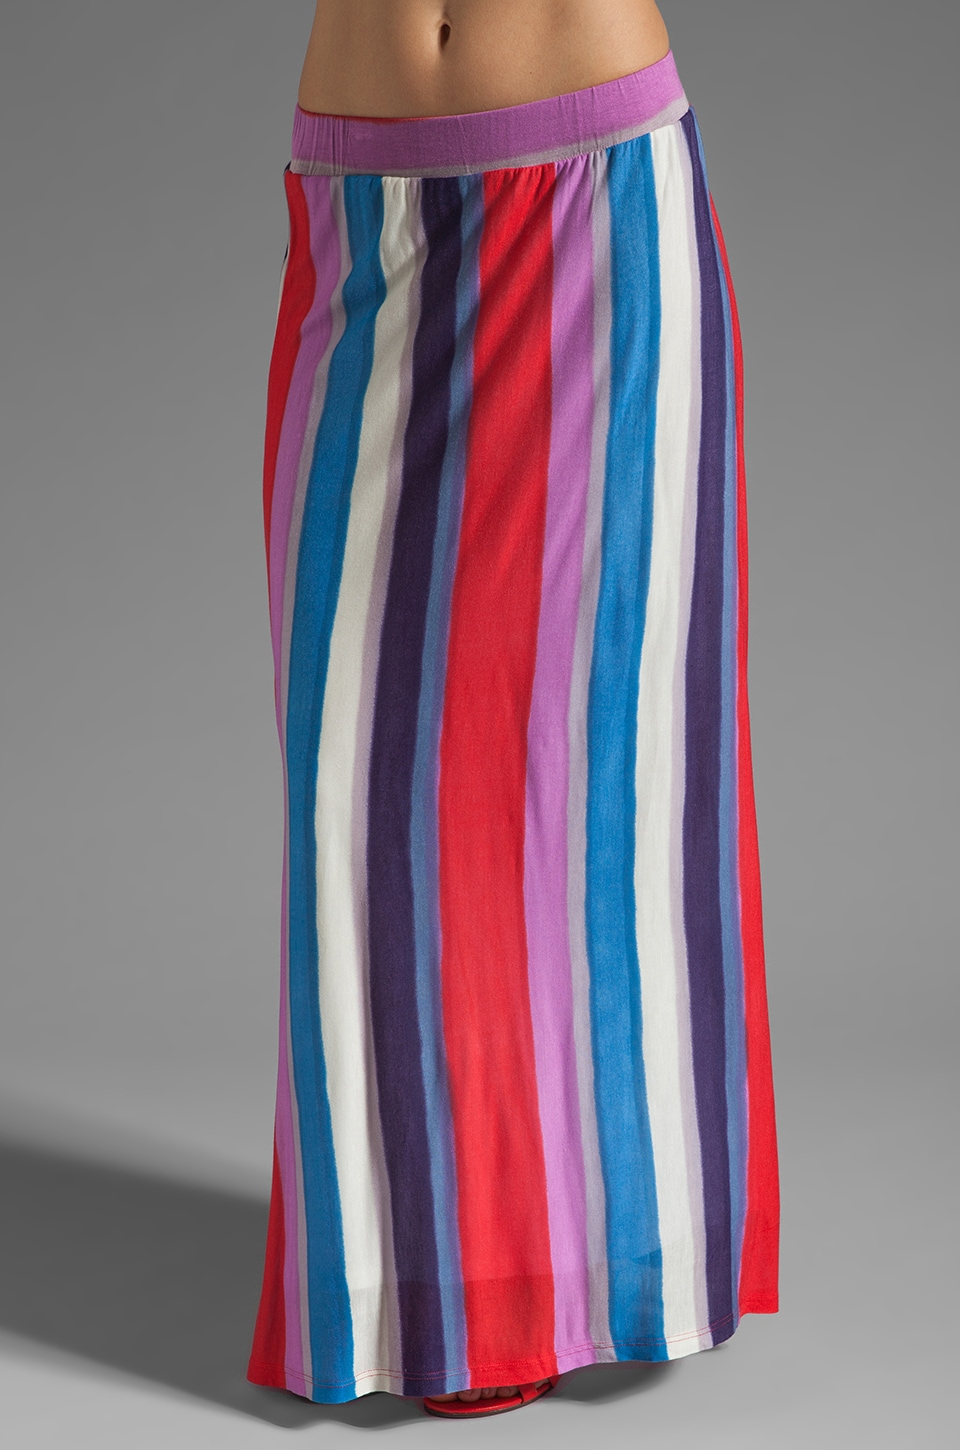 Splendid Watercolor Stripe Maxi Skirt in Firework